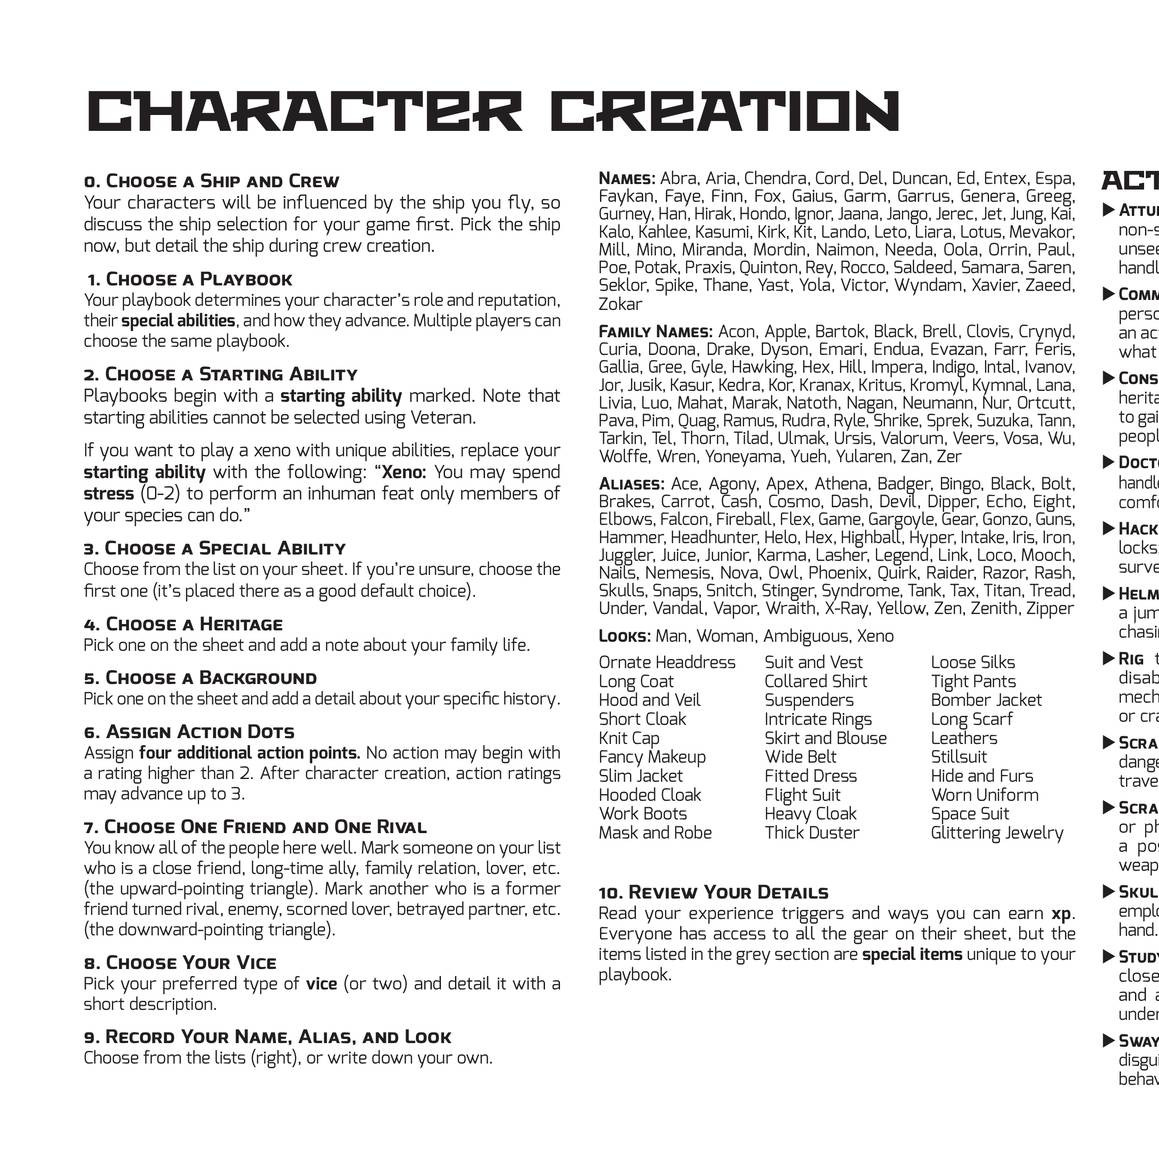 Scum and Villainy - Character Sheets (Xeno) pdf | DocDroid